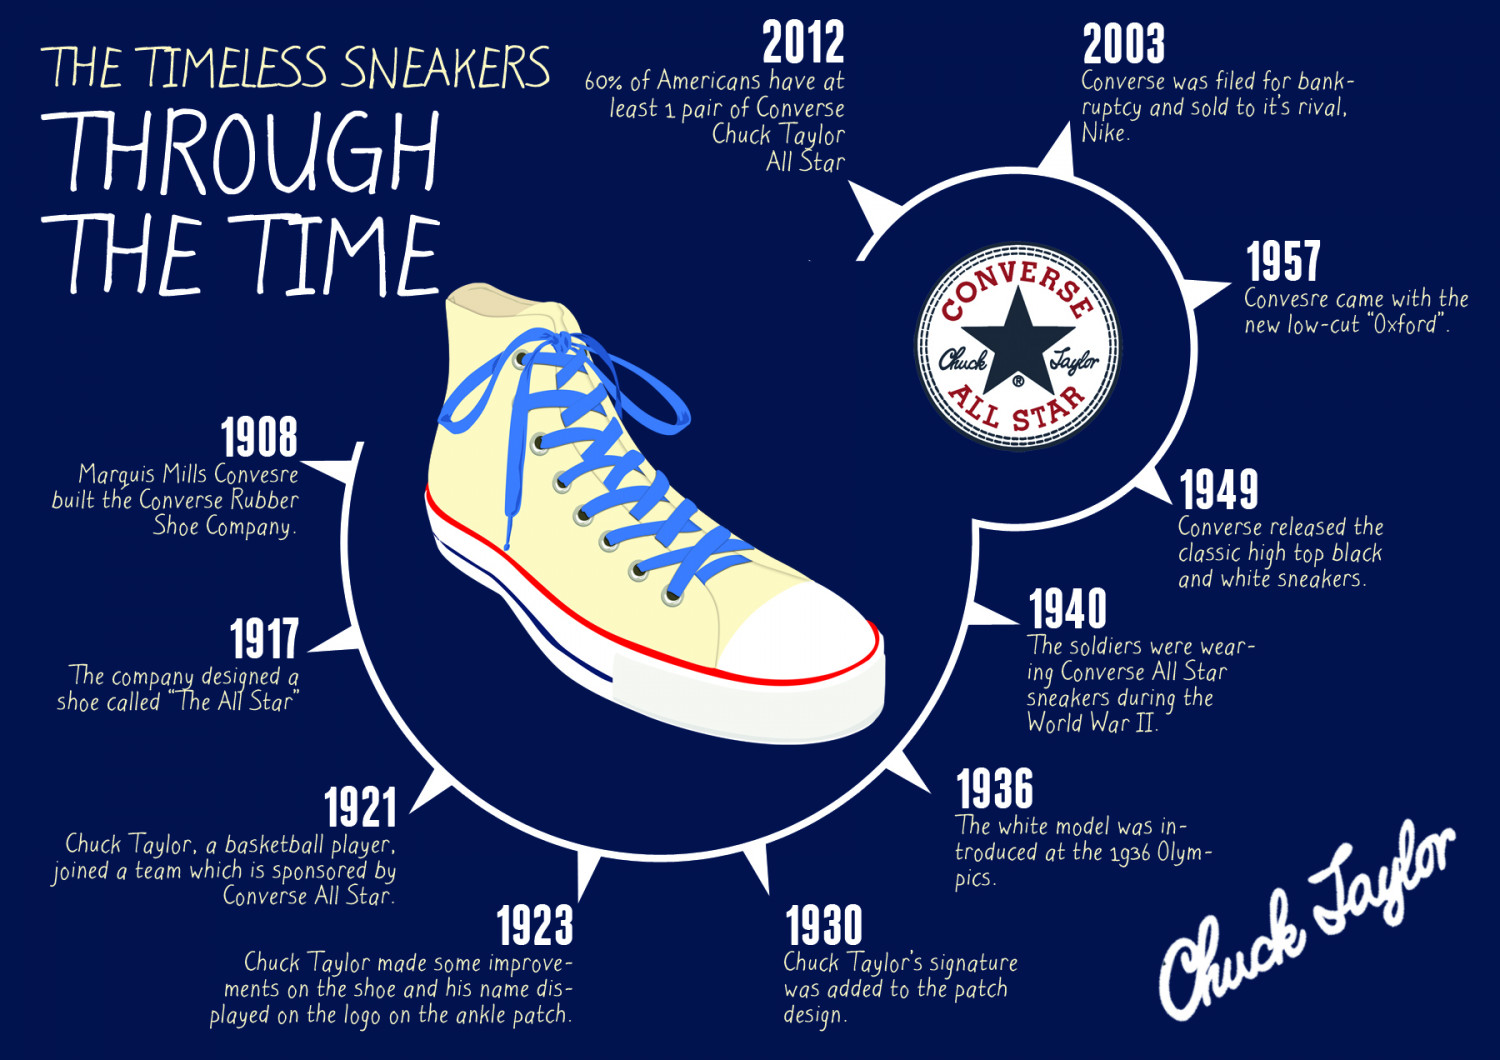 The Timeless Sneakers: Through The Times (Revised) Infographic